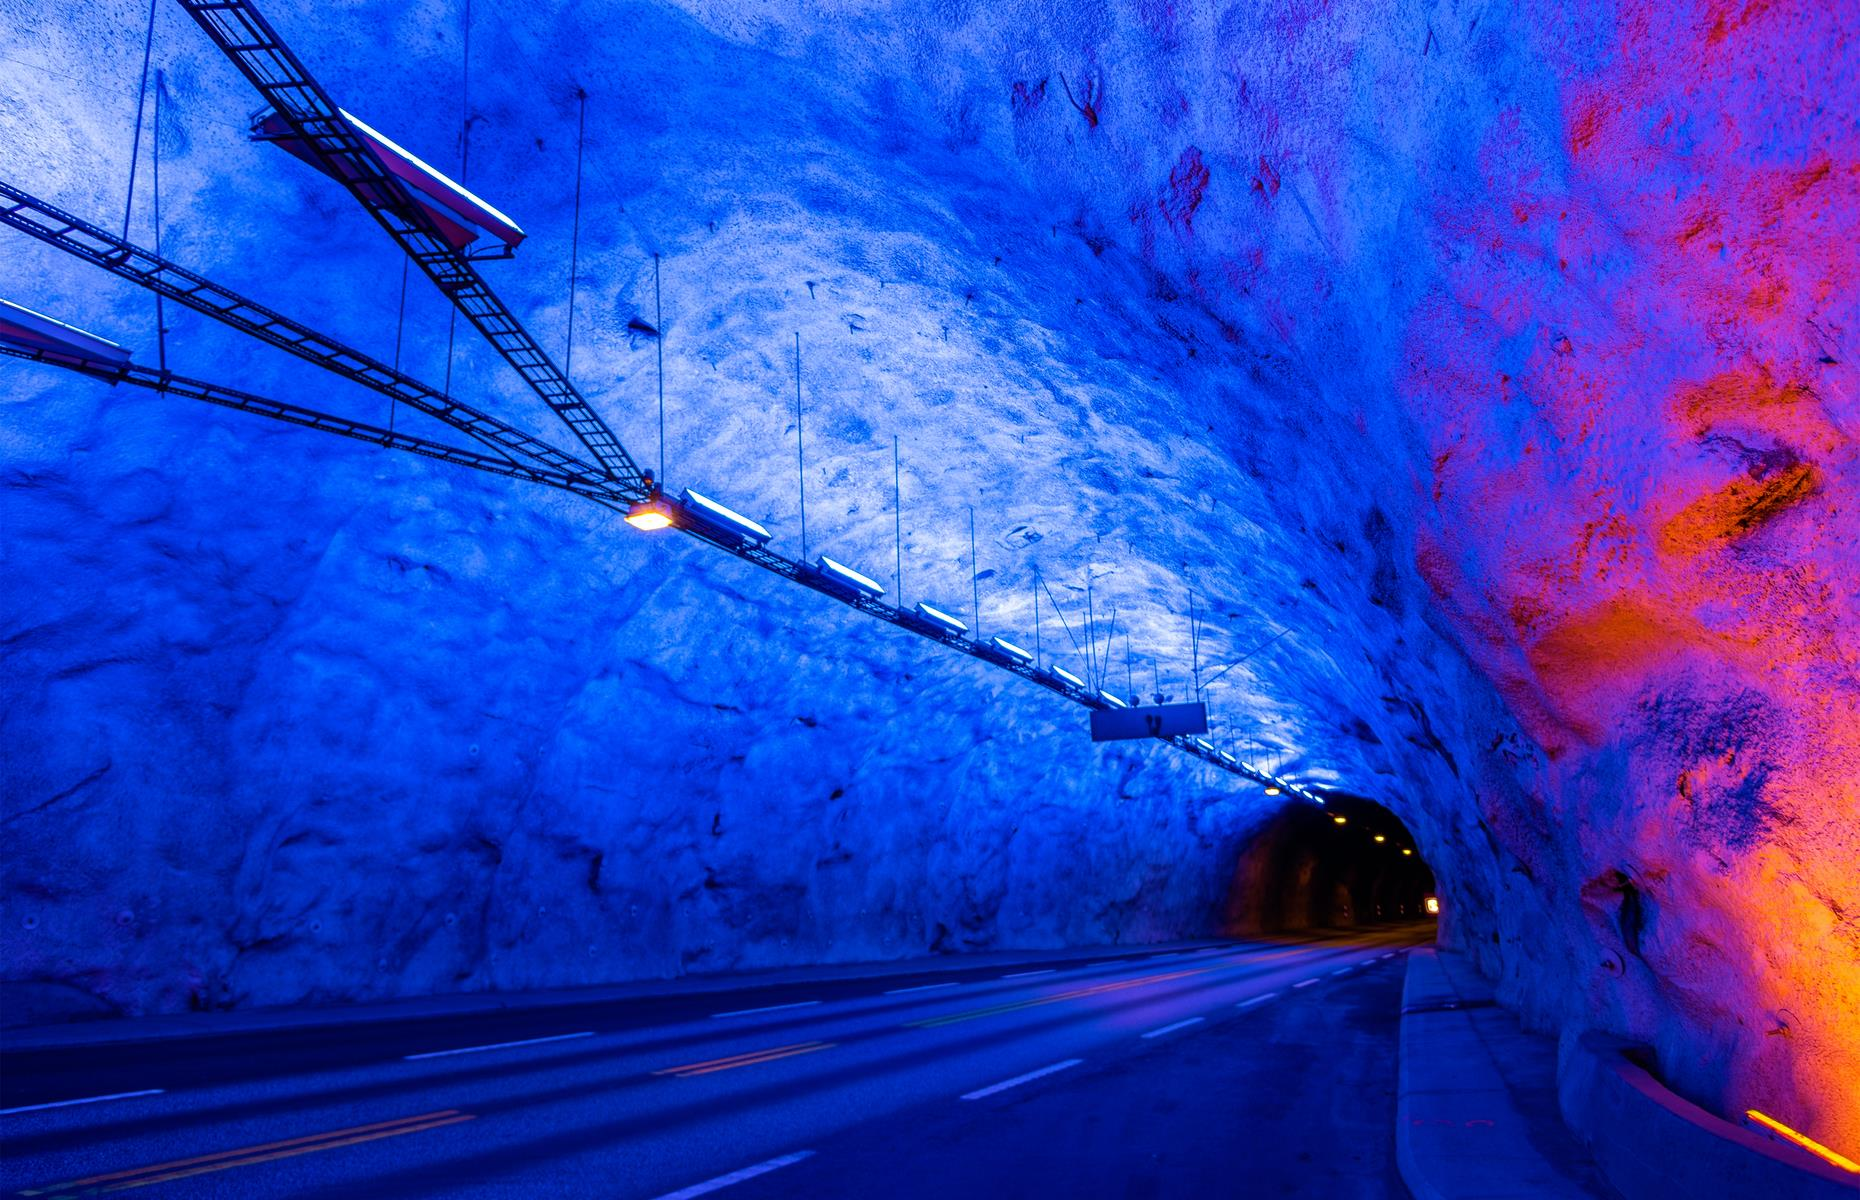 Slide 2 of 31: West Norway's Lærdal tunnel stretches over 15 miles (24.5km) between the Aurland and Lærdal municipalities, providing a ferry-free connection between Oslo and Bergen. It holds the title of the world's longest road tunnel. The impressive piece of infrastructure opened in 2000 after five years of construction and features three rock chambers, which are illuminated with colorful lights. It also has several state-of-the-art safety stations with emergency equipment and call boxes.